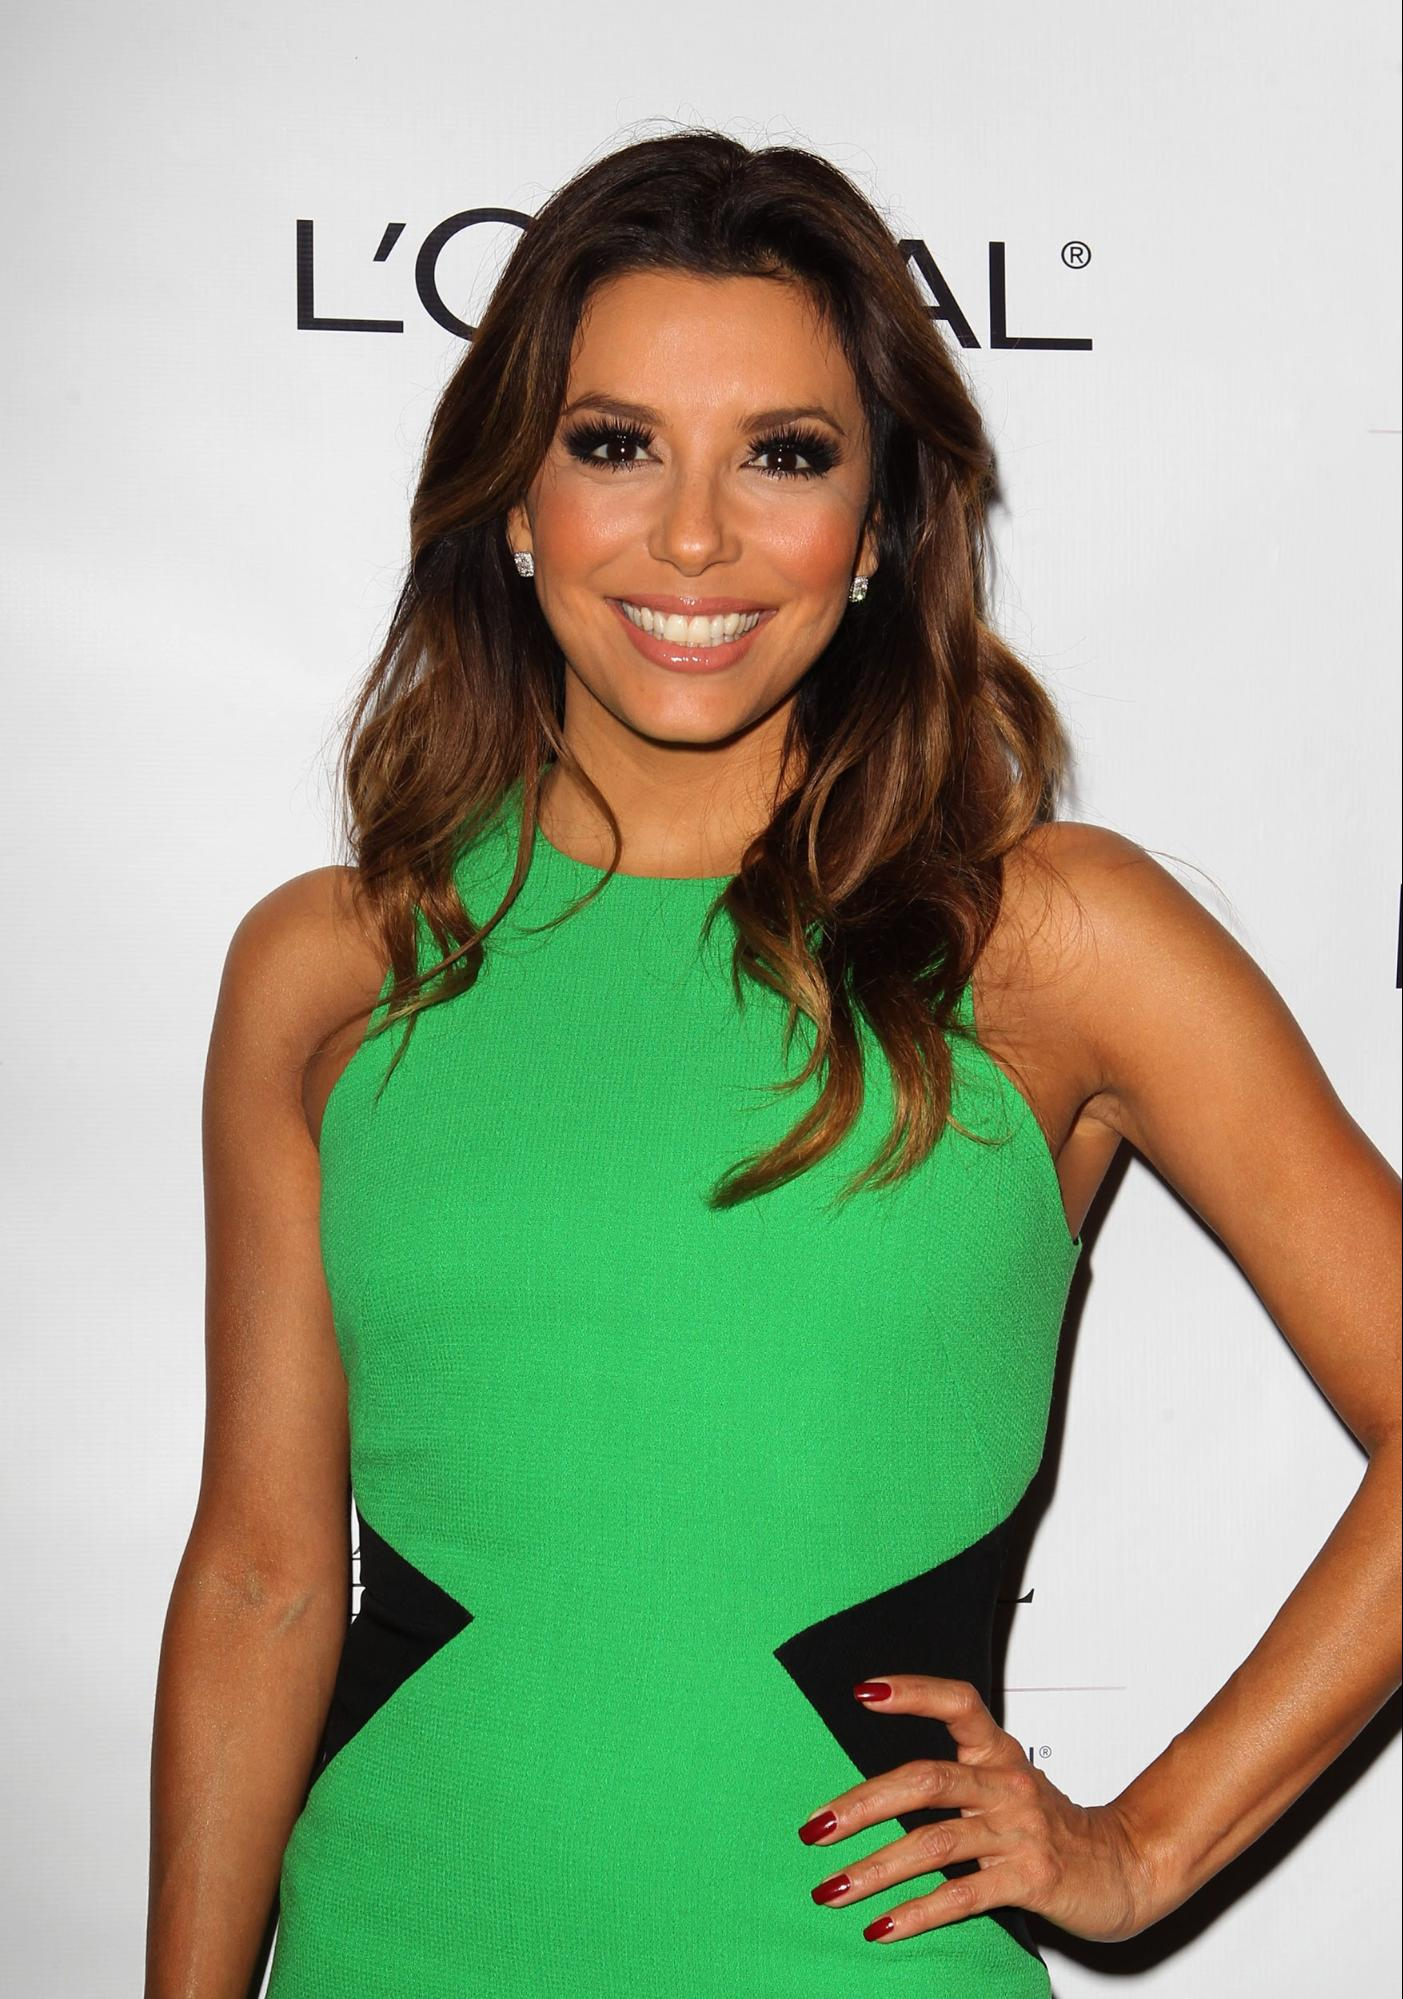 Eva Longoria wore this subtle body contouring dress to enhance her waist and make it appear more nipped in. Credit: WENN